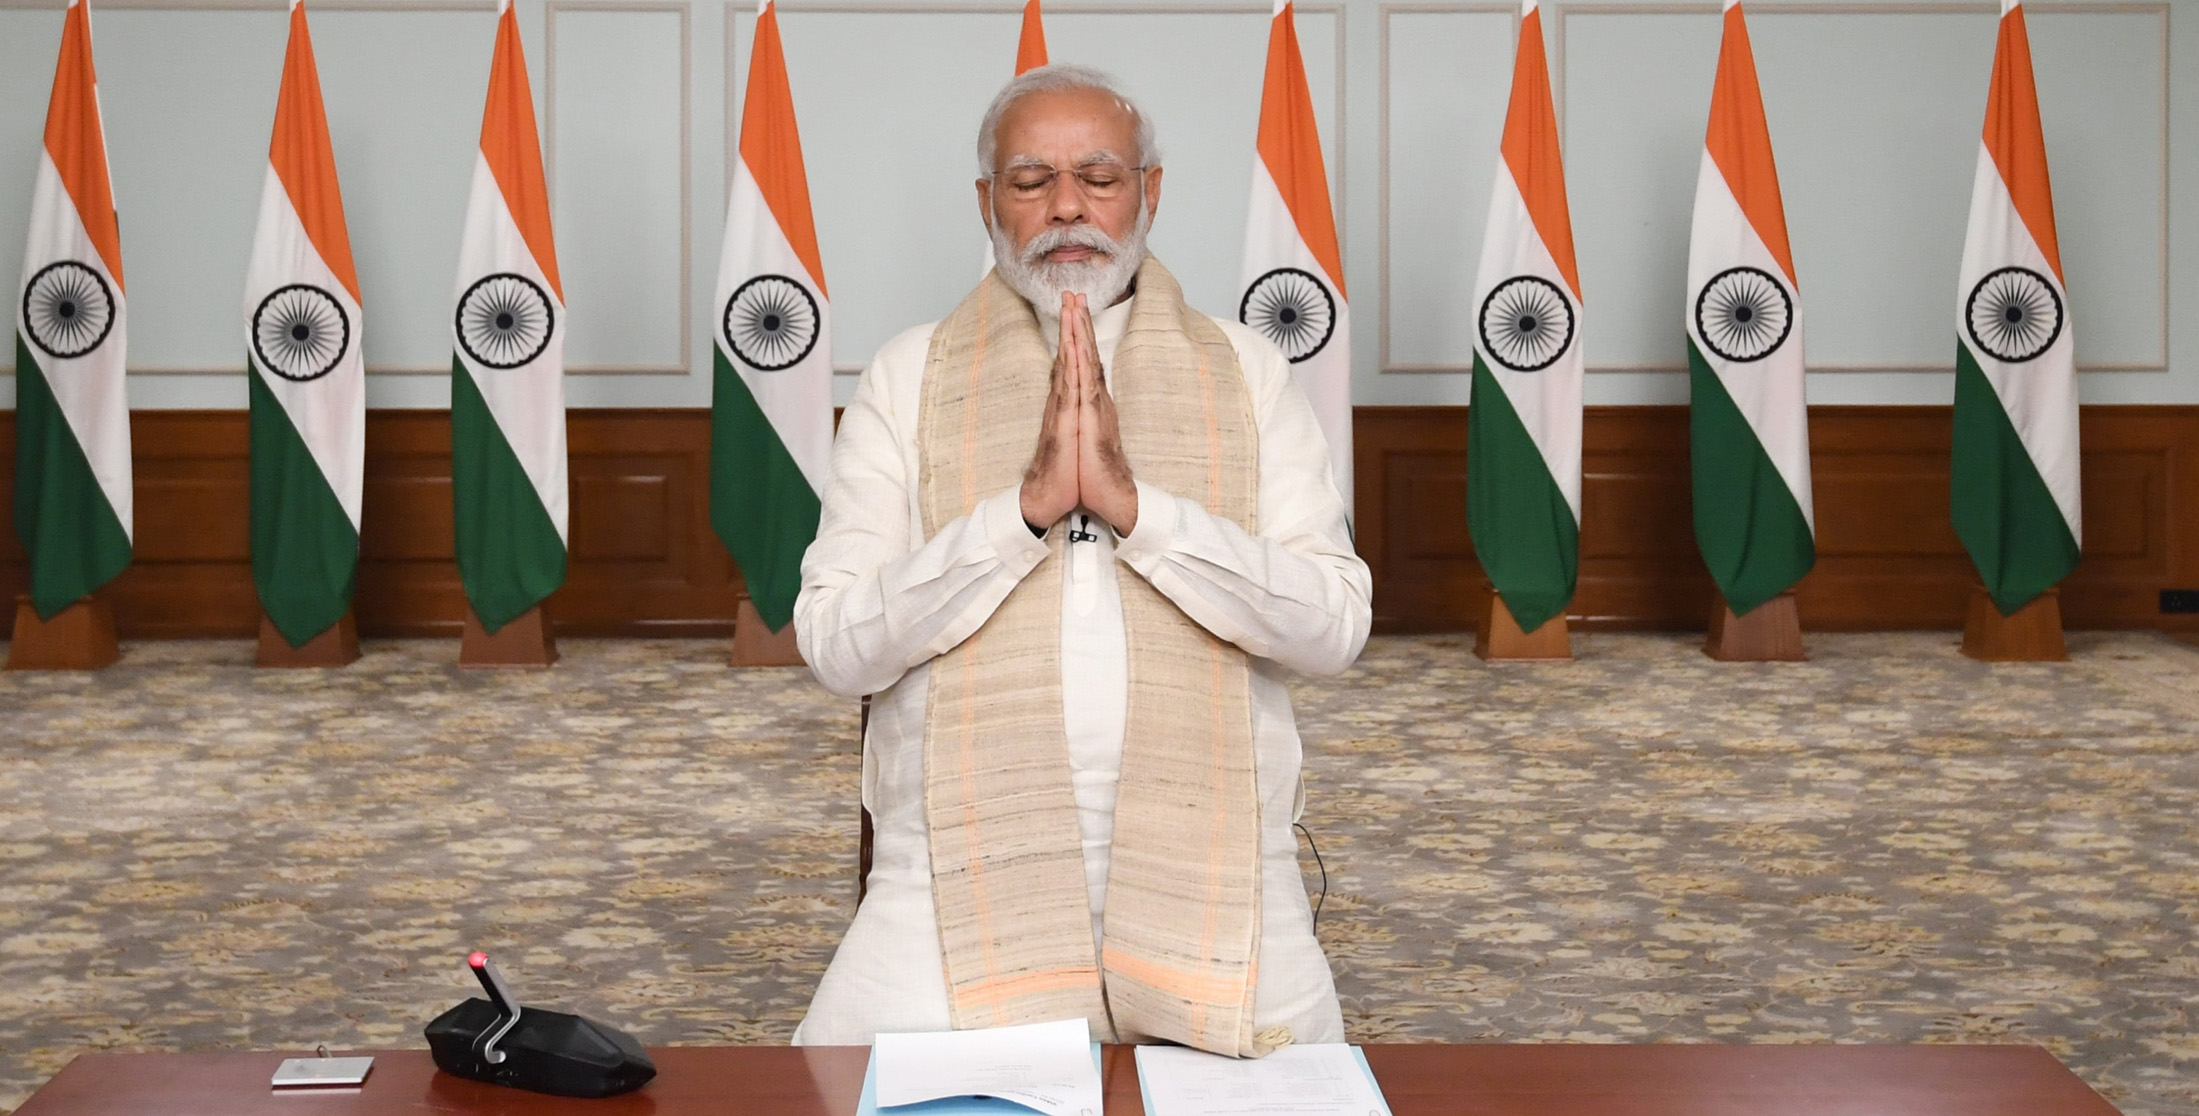 The Prime Minister, Shri Narendra Modi paying tributes to the Martyrs during the Virtual Conference with the Chief Ministers, in New Delhi on June 17, 2020.